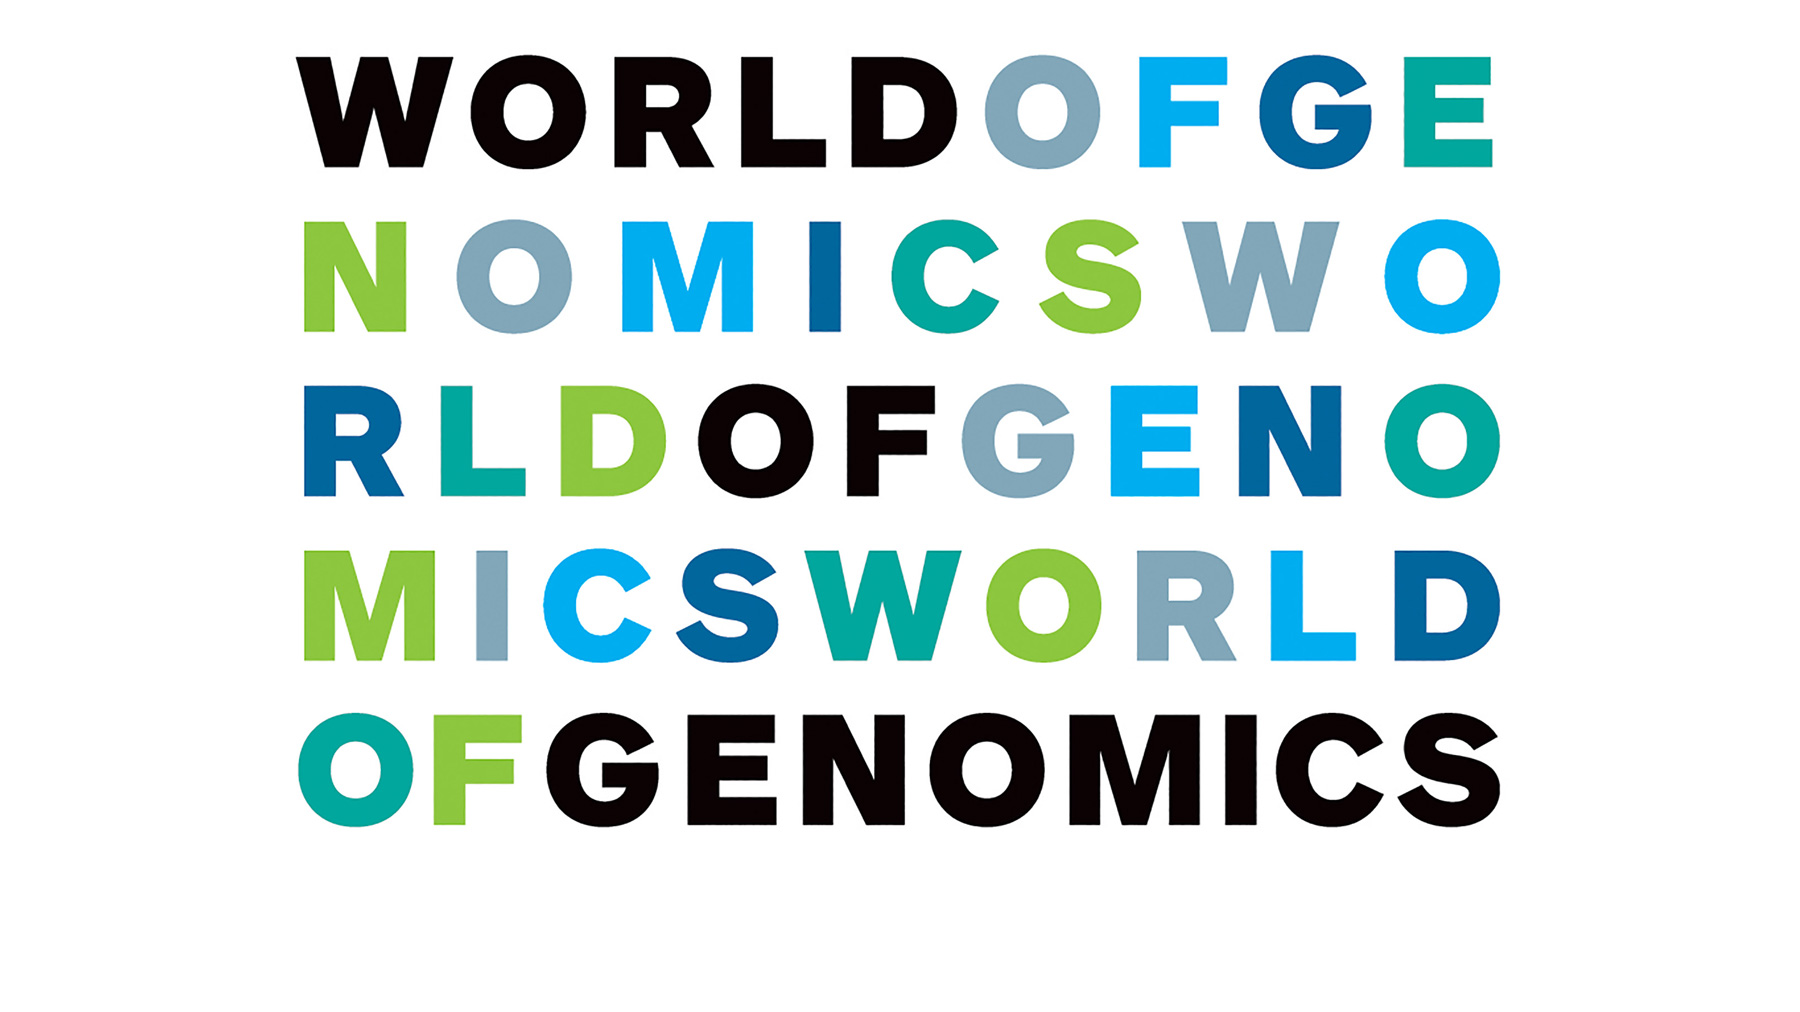 World of Genomics graphic